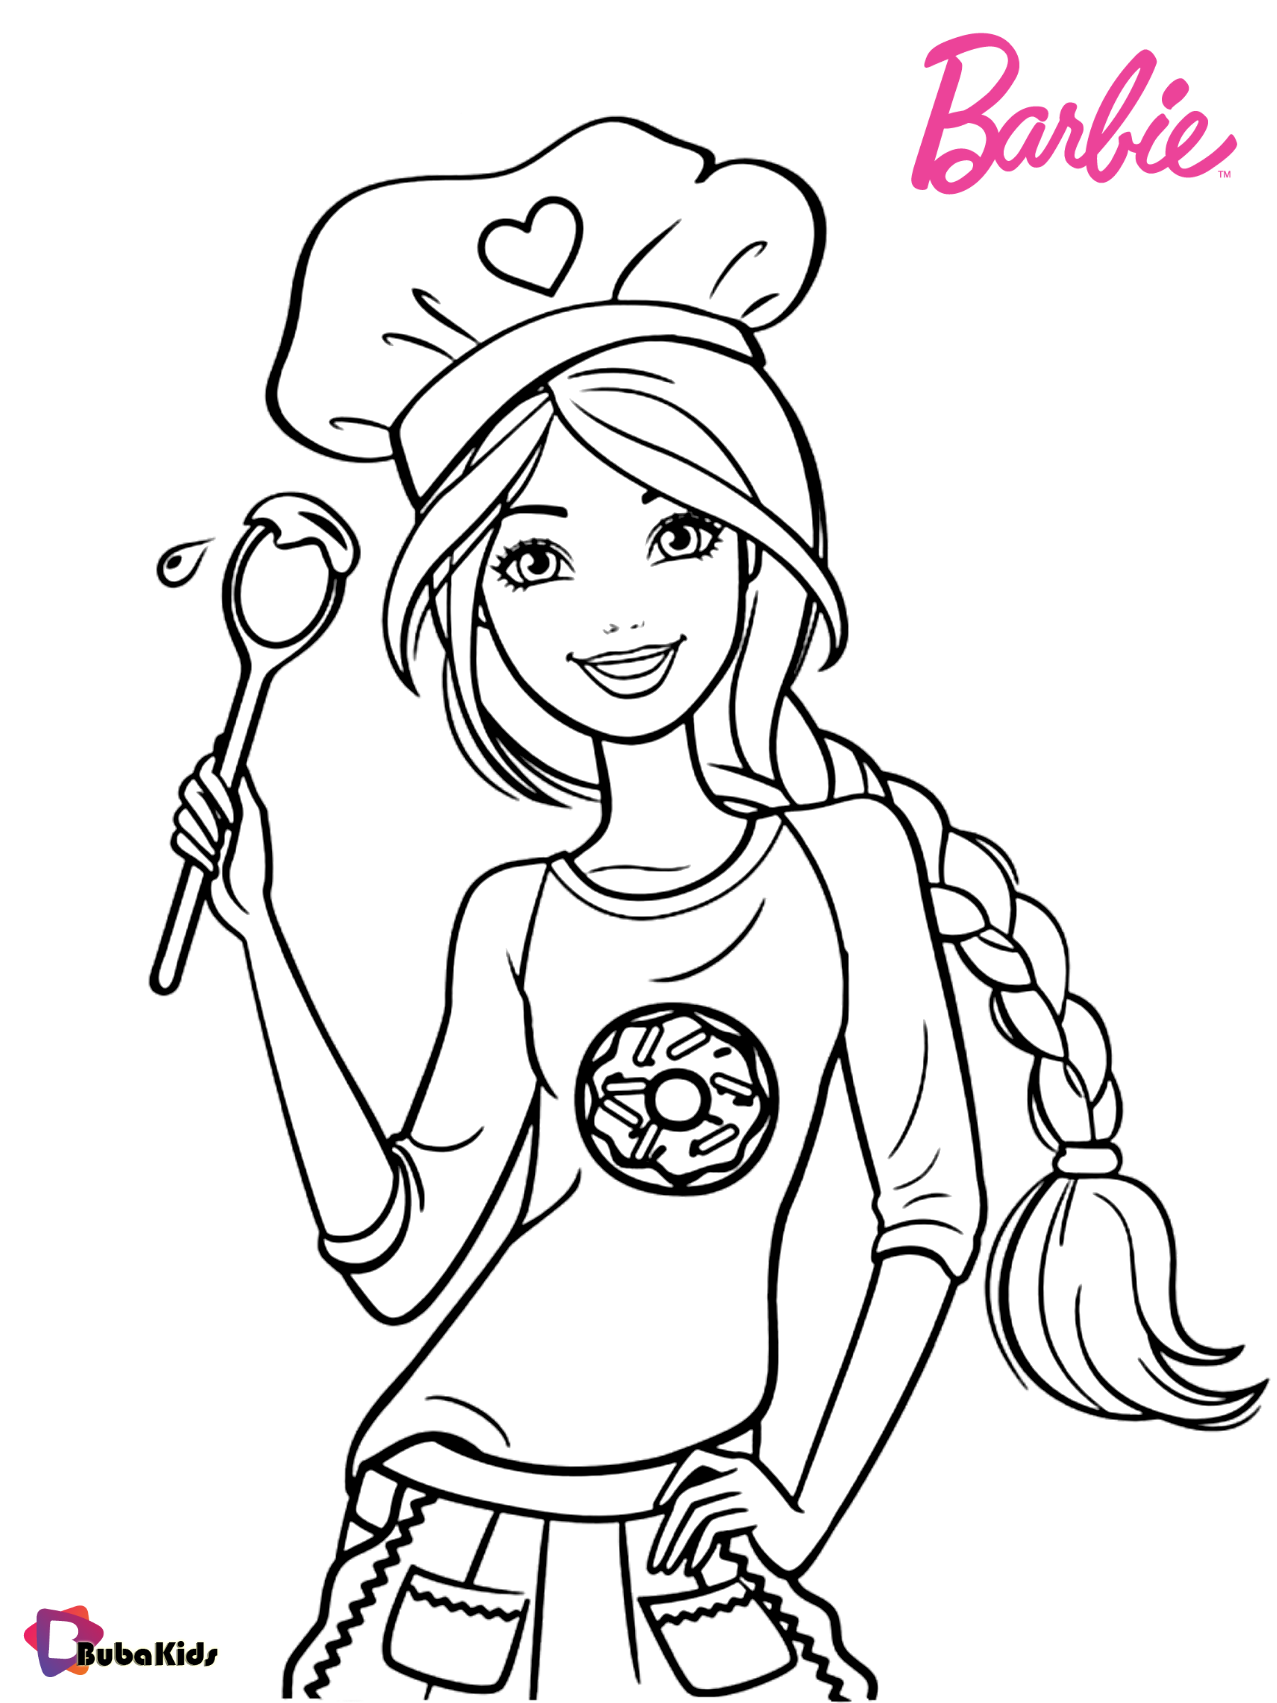 Pin By Vilma Hdez Hdez On Thing Barbie Coloring Pages Princess Coloring Pages Barbie Drawing